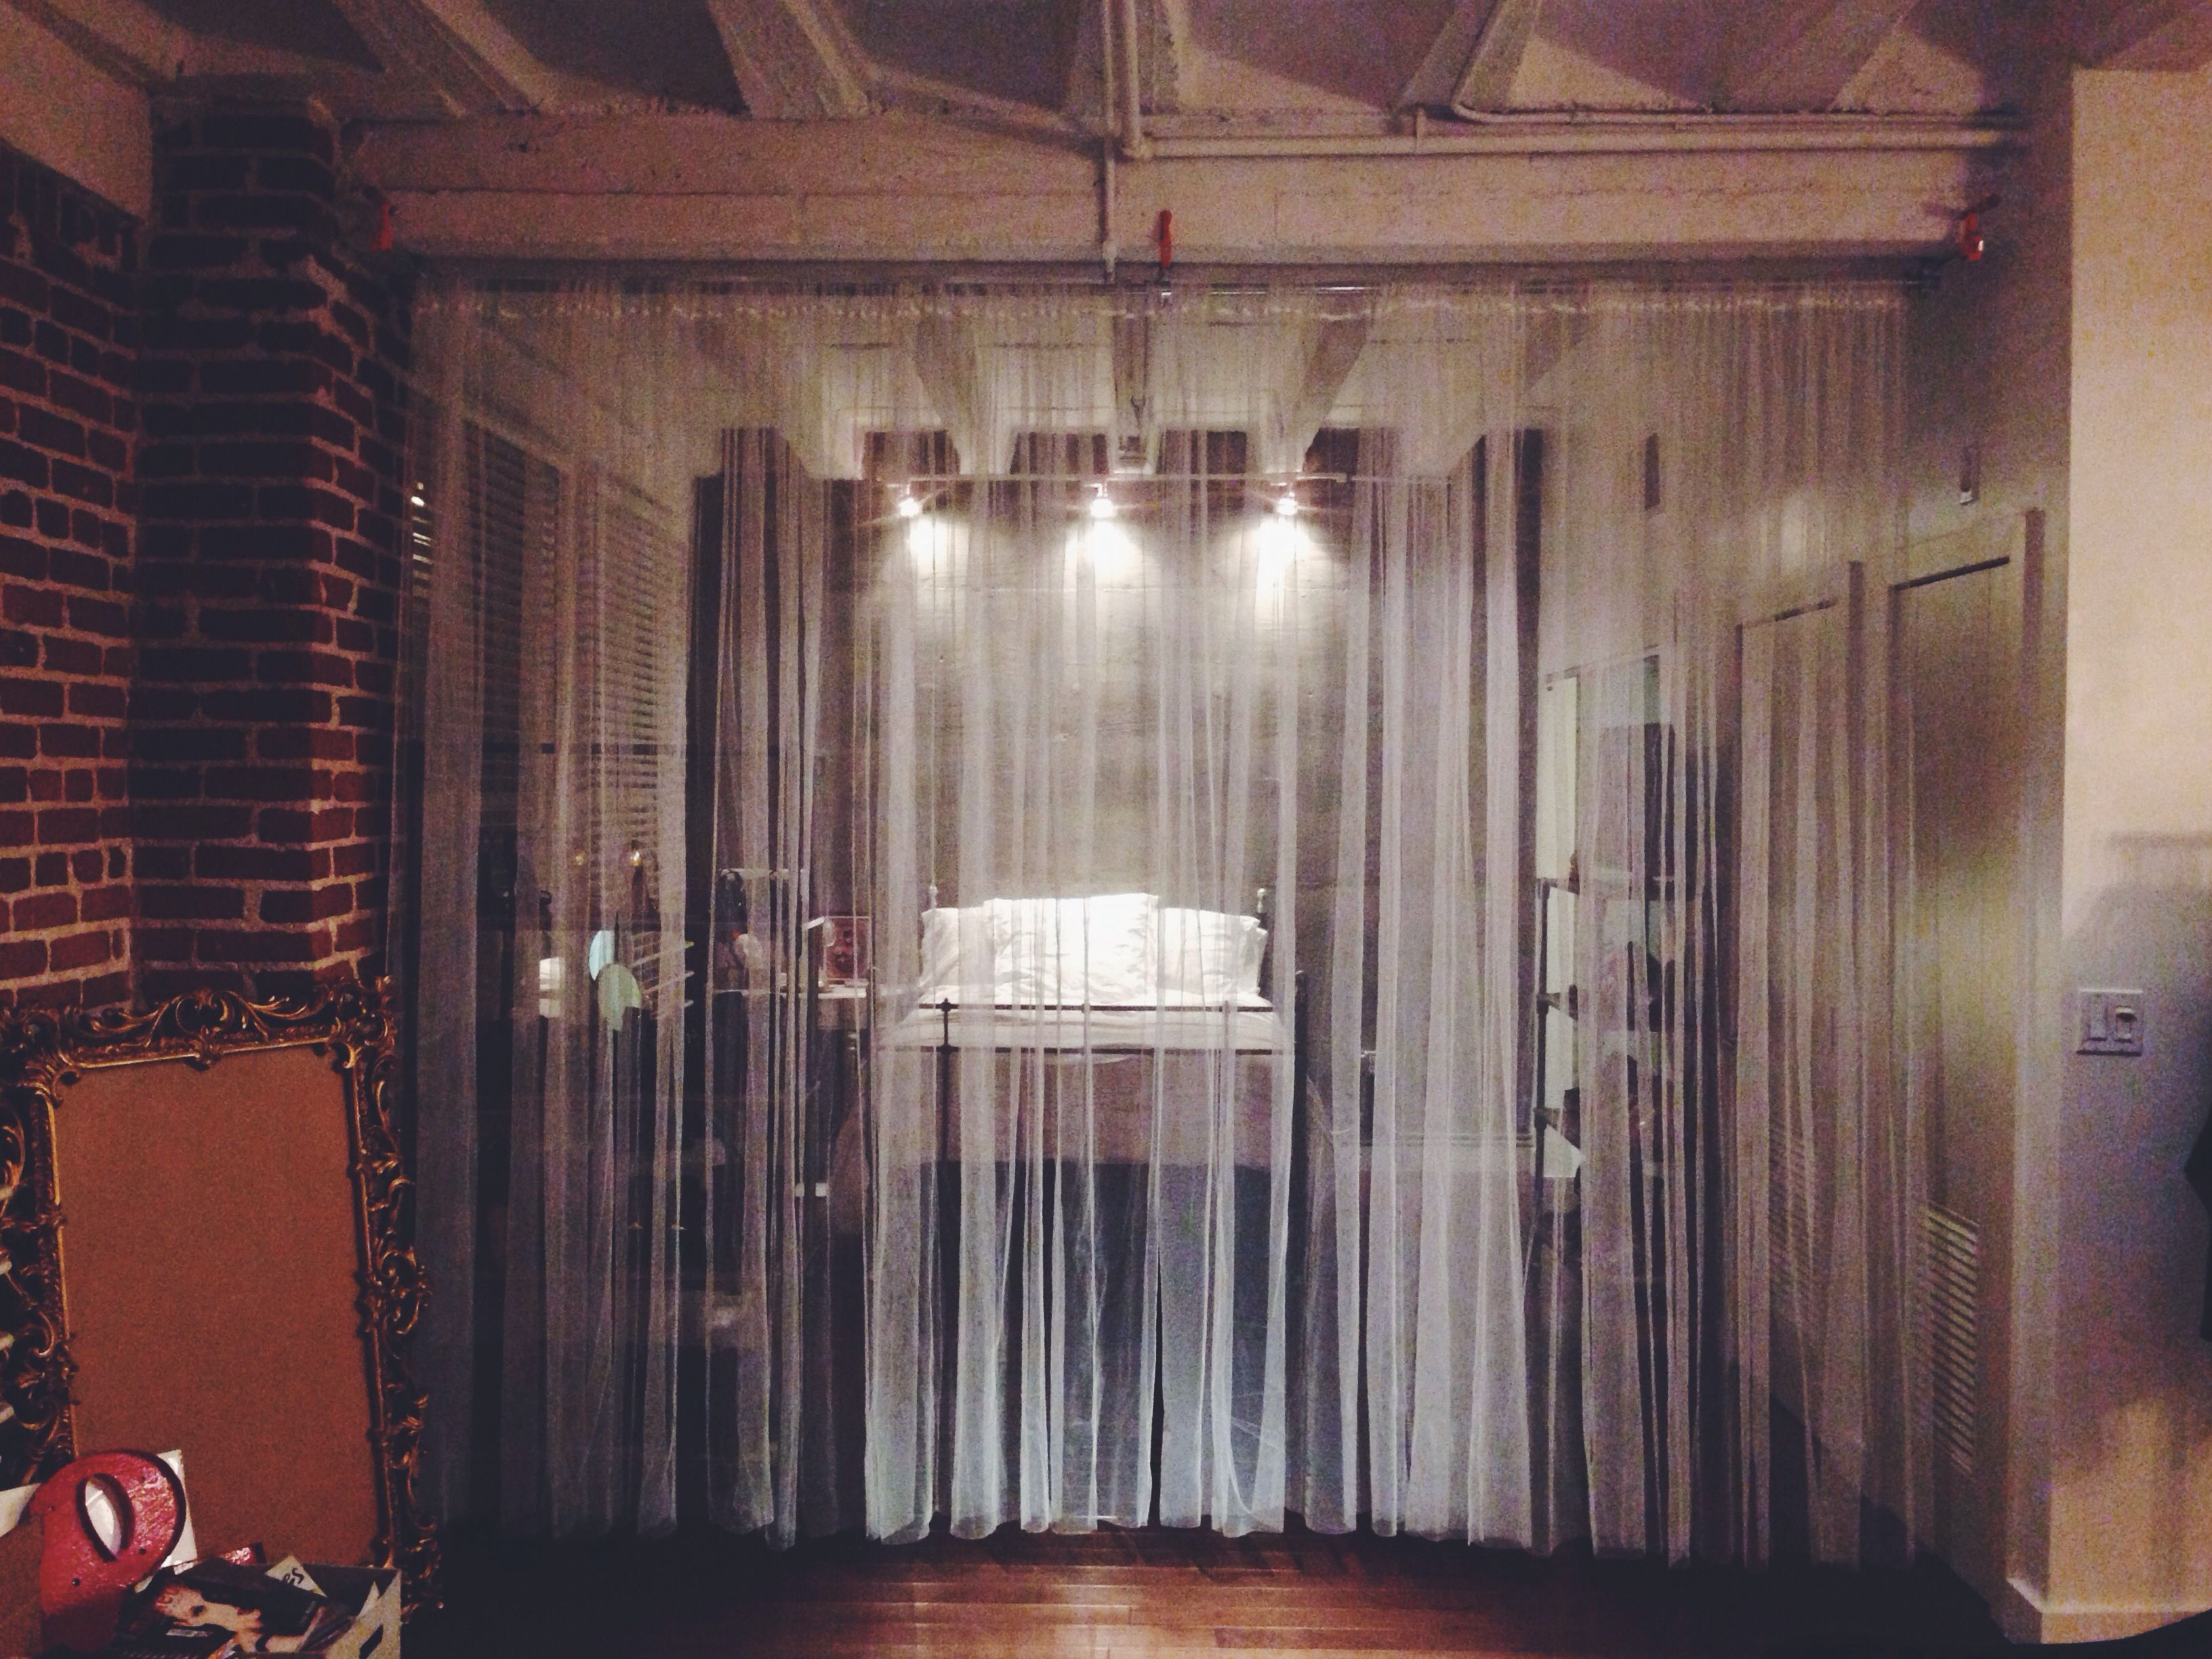 Diy dreamlike room divider using pipe u cclamps by claire marshall